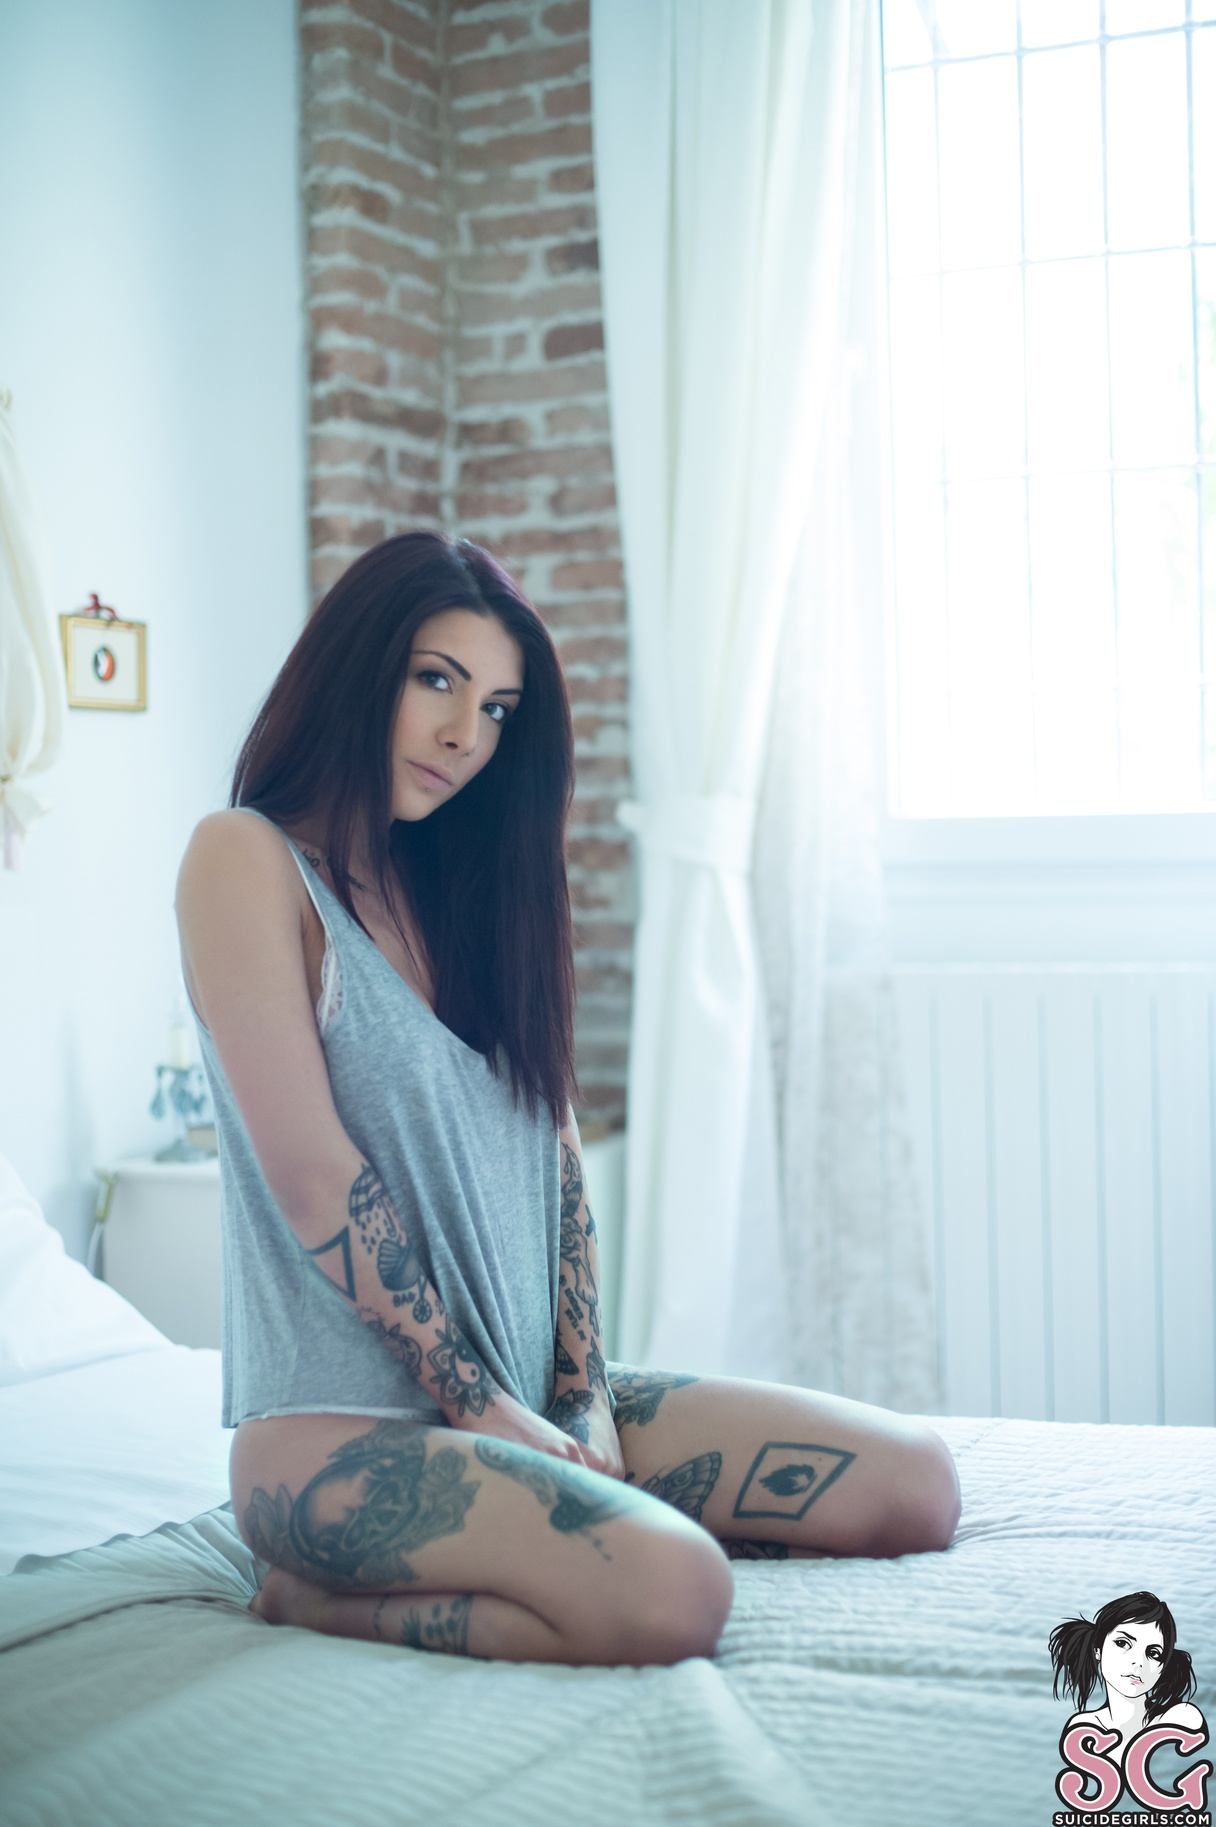 Indaco Suicide by R_Girardi